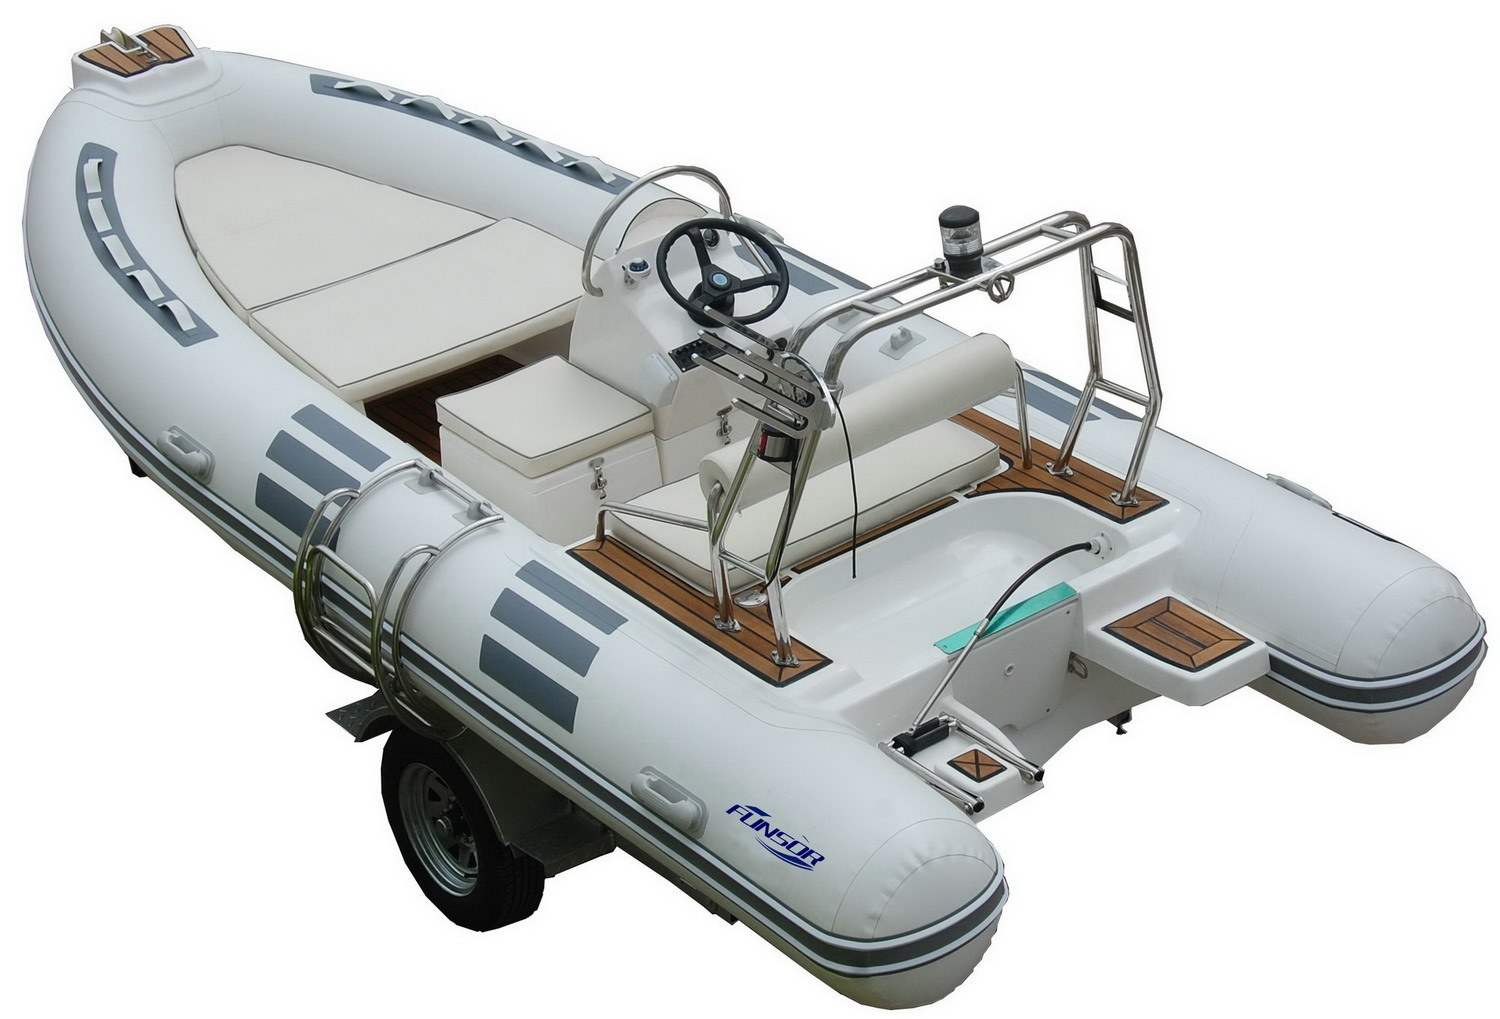 banquette rib with Product Hot Rigid Inflatable Boat Rib 480  Euoesoisg on Bateau 24 Solent Ribs Solent Rib 7 40i besides Embase Pivotante Pour Banquette Aav Passager Trafic Vivaro Primastar Avt 2014 C2x20191281 besides Viewtopic in addition F 13341 Nar995125 additionally Fourgon Amenage Accueil.